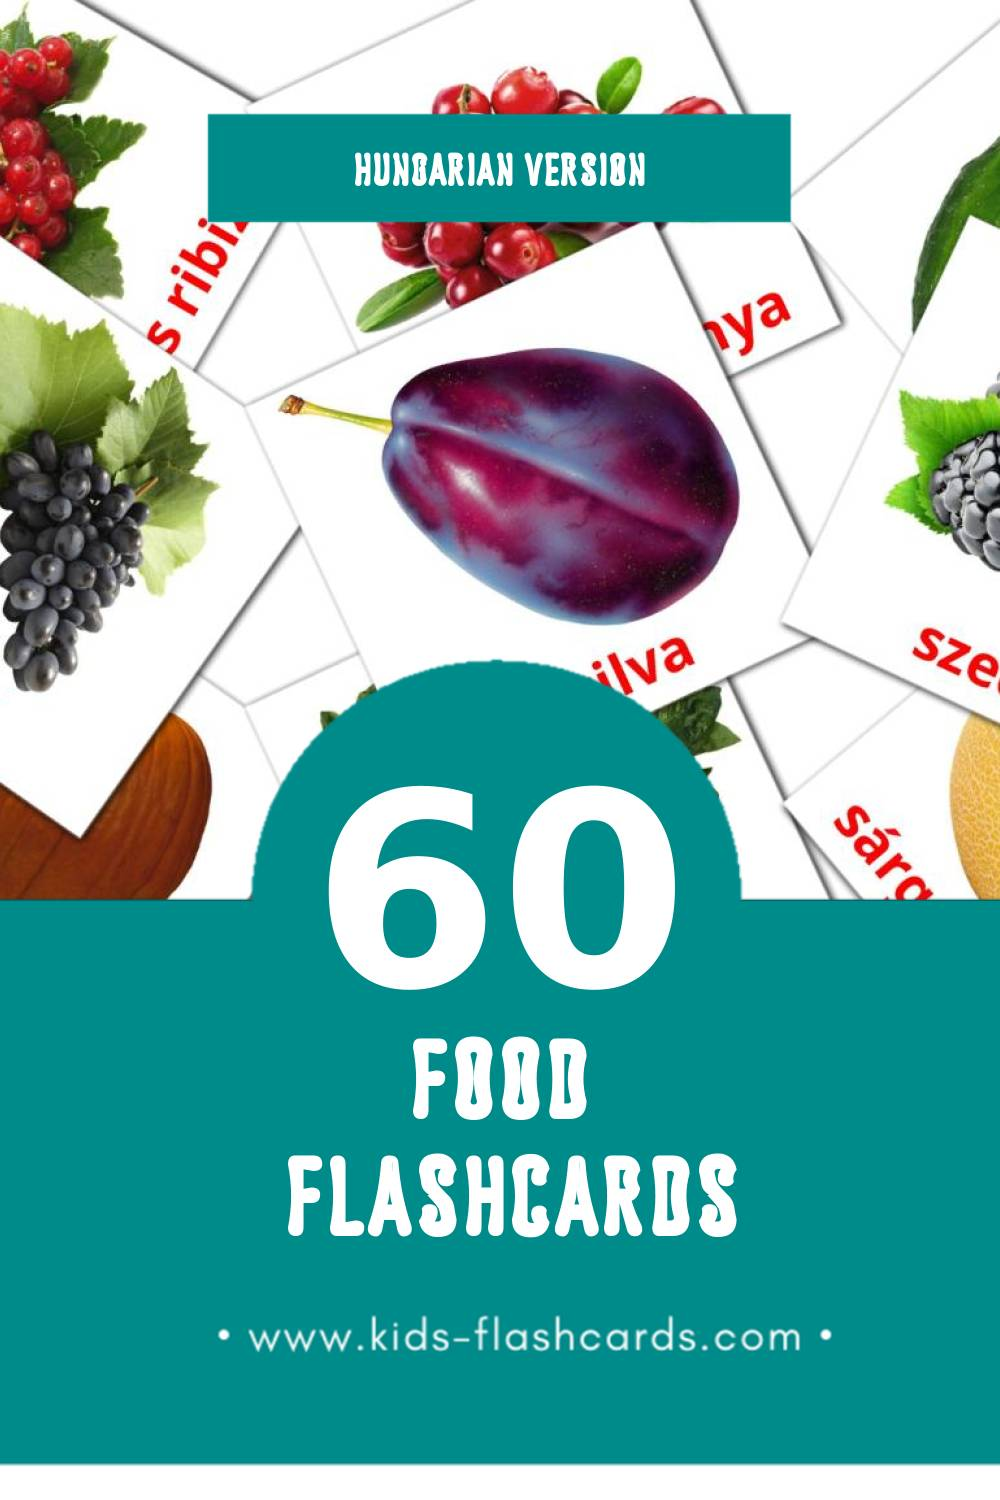 Visual Élelmiszer Flashcards for Toddlers (60 cards in Hungarian)